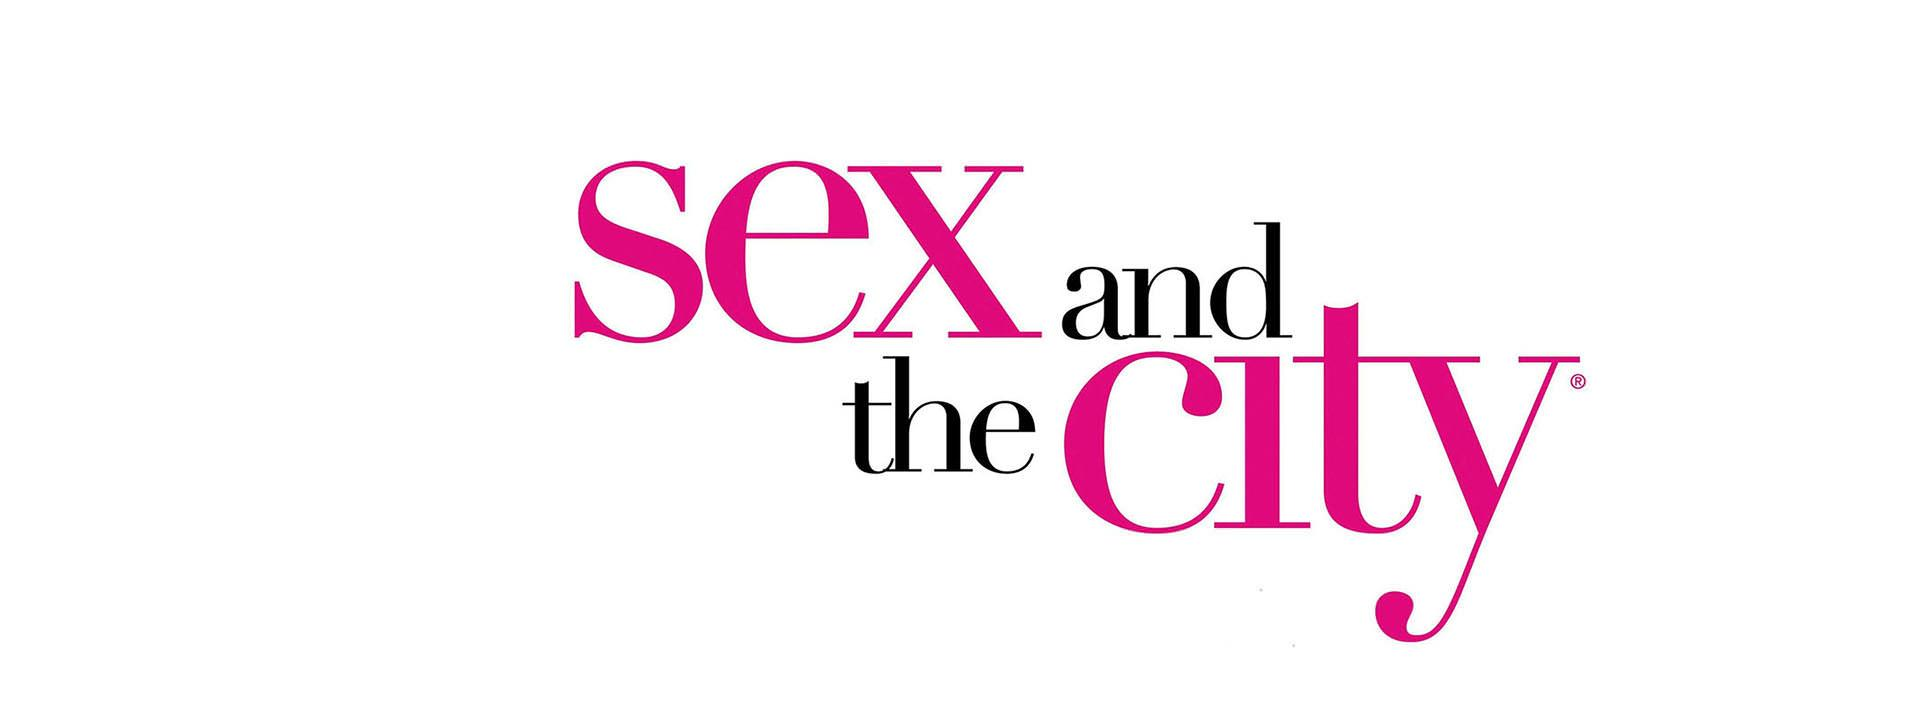 Las 37 Mejores Frases De Sex And The City Lifeder